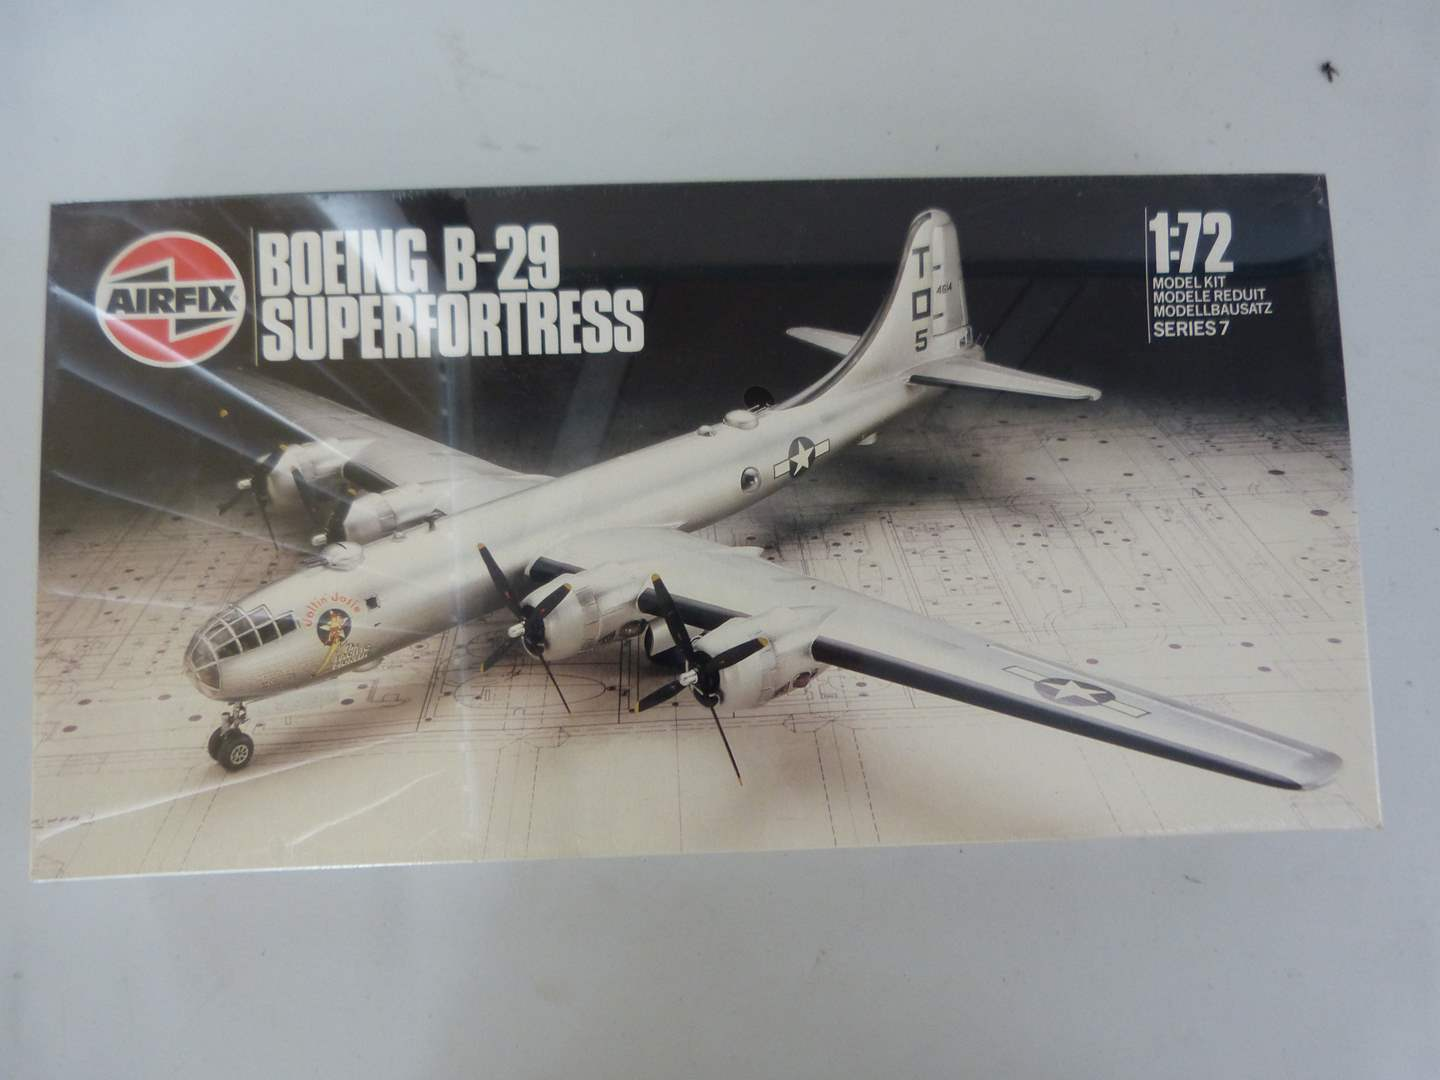 Lot # 255  Boeing B-29 Super Fortress never opened model (main image)